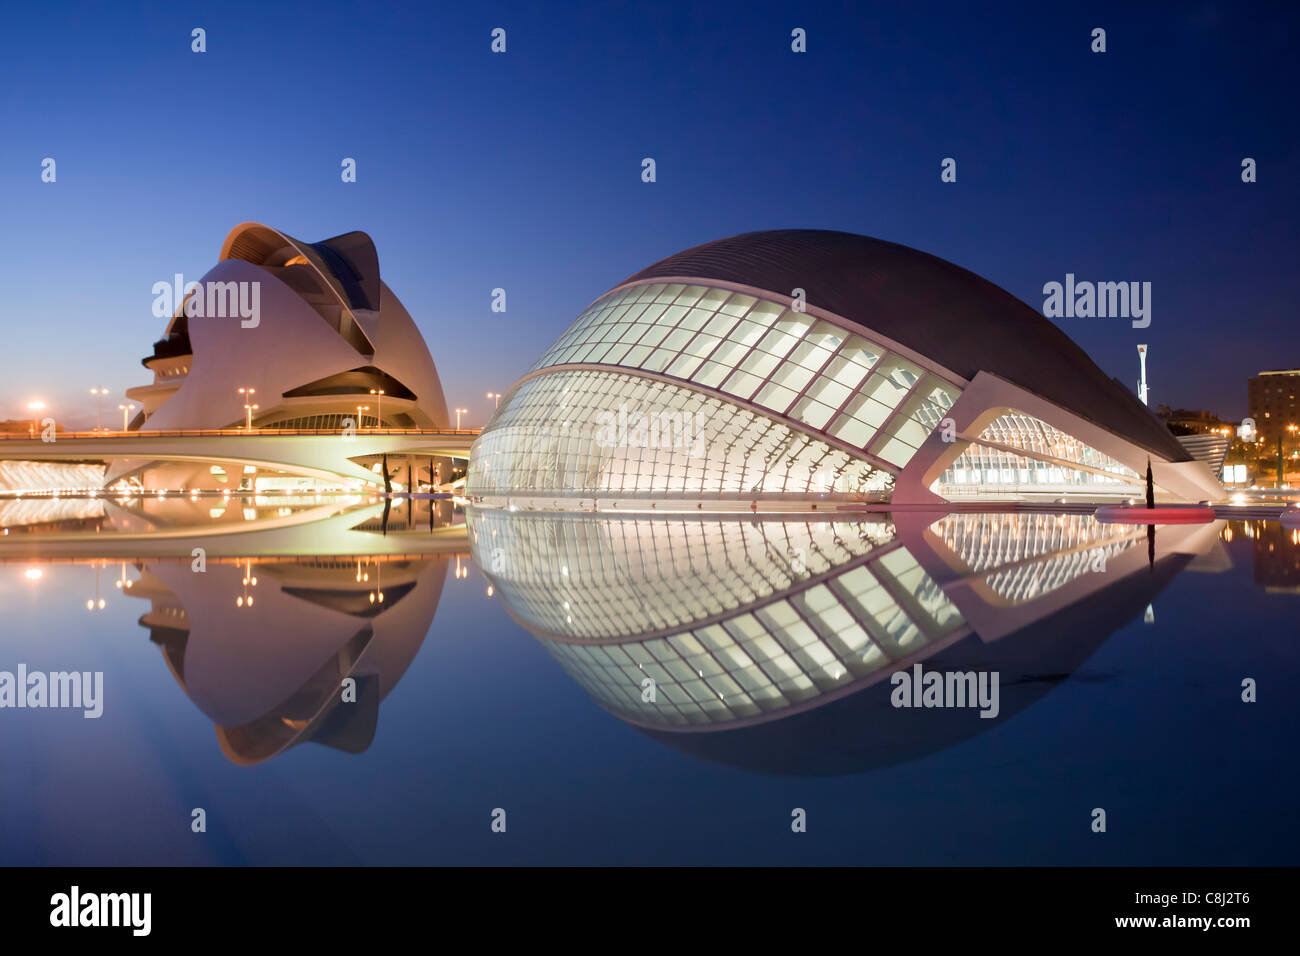 Spain, Europe, Valencia, City of Arts and Science, Calatrava, architecture, modern, Hemisferic, Palace of Arts, - Stock Image